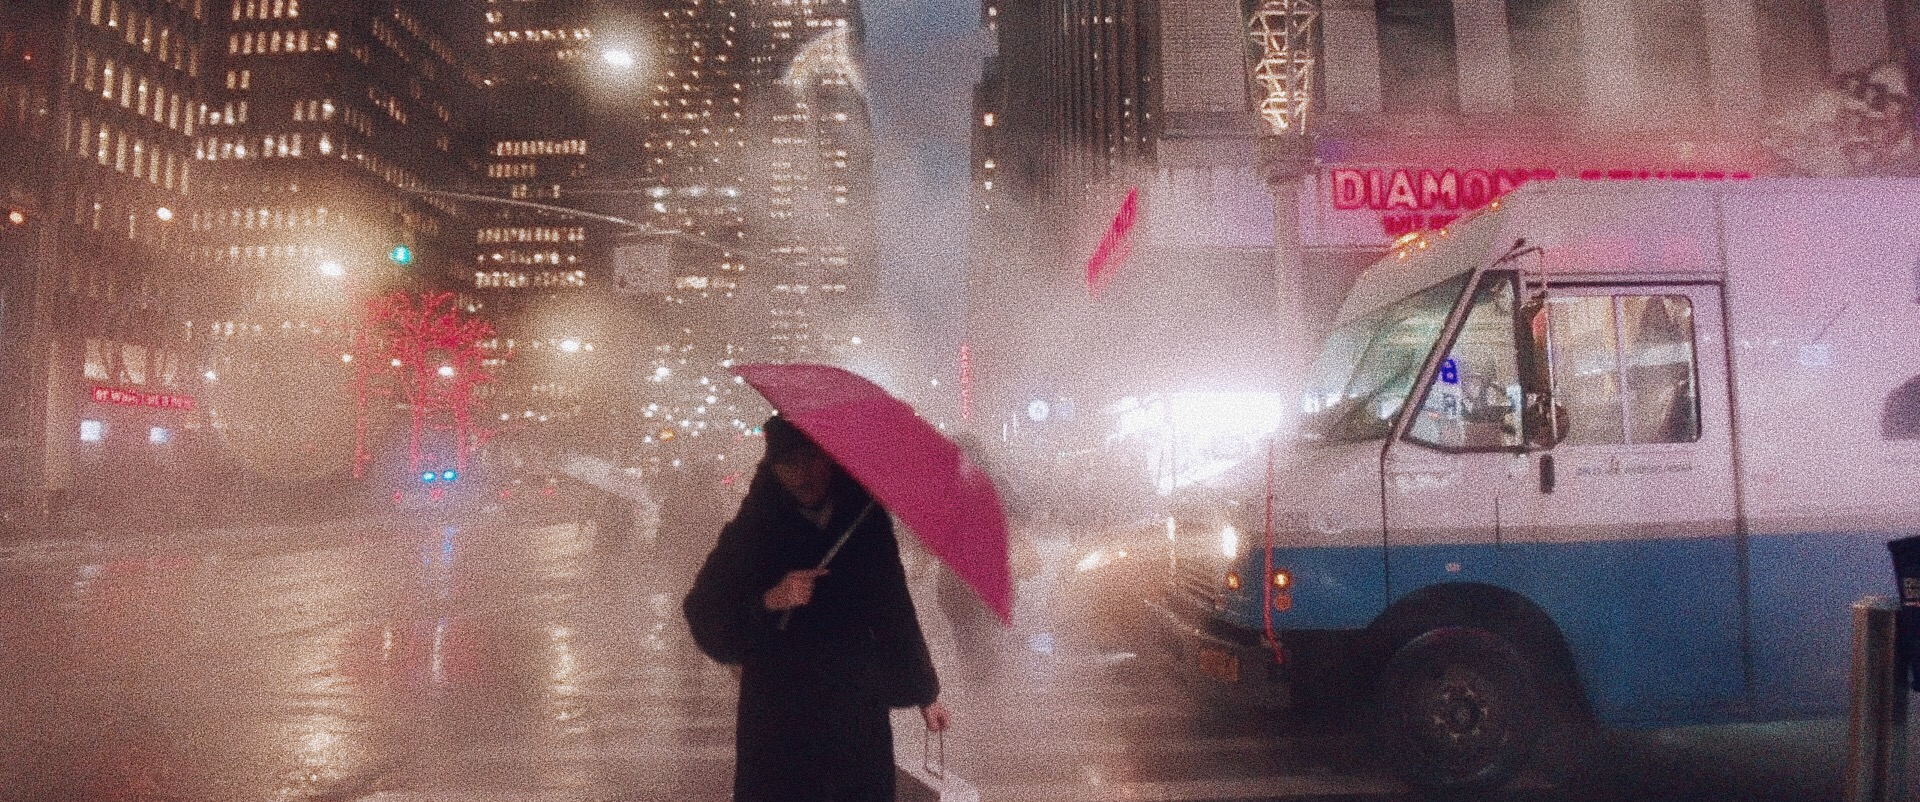 A person carries a pink umbrella through the rain and fog in the city.